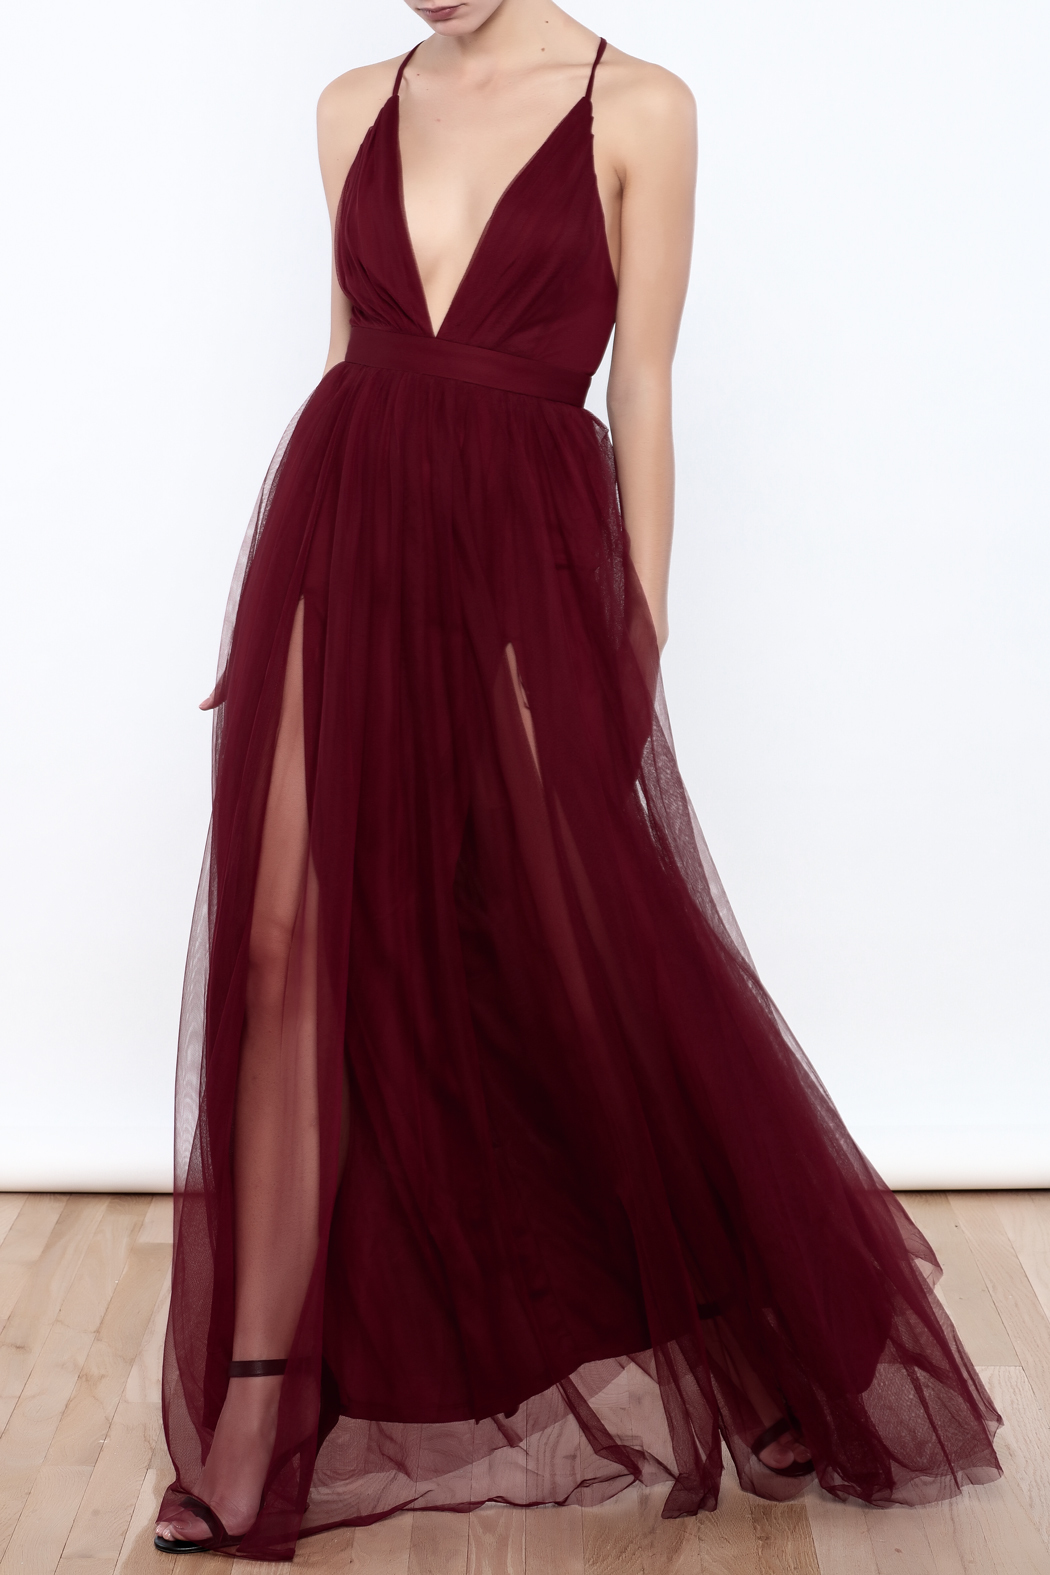 luxxel Tulle Maxi Dress from Manhattan by Dor L Dor